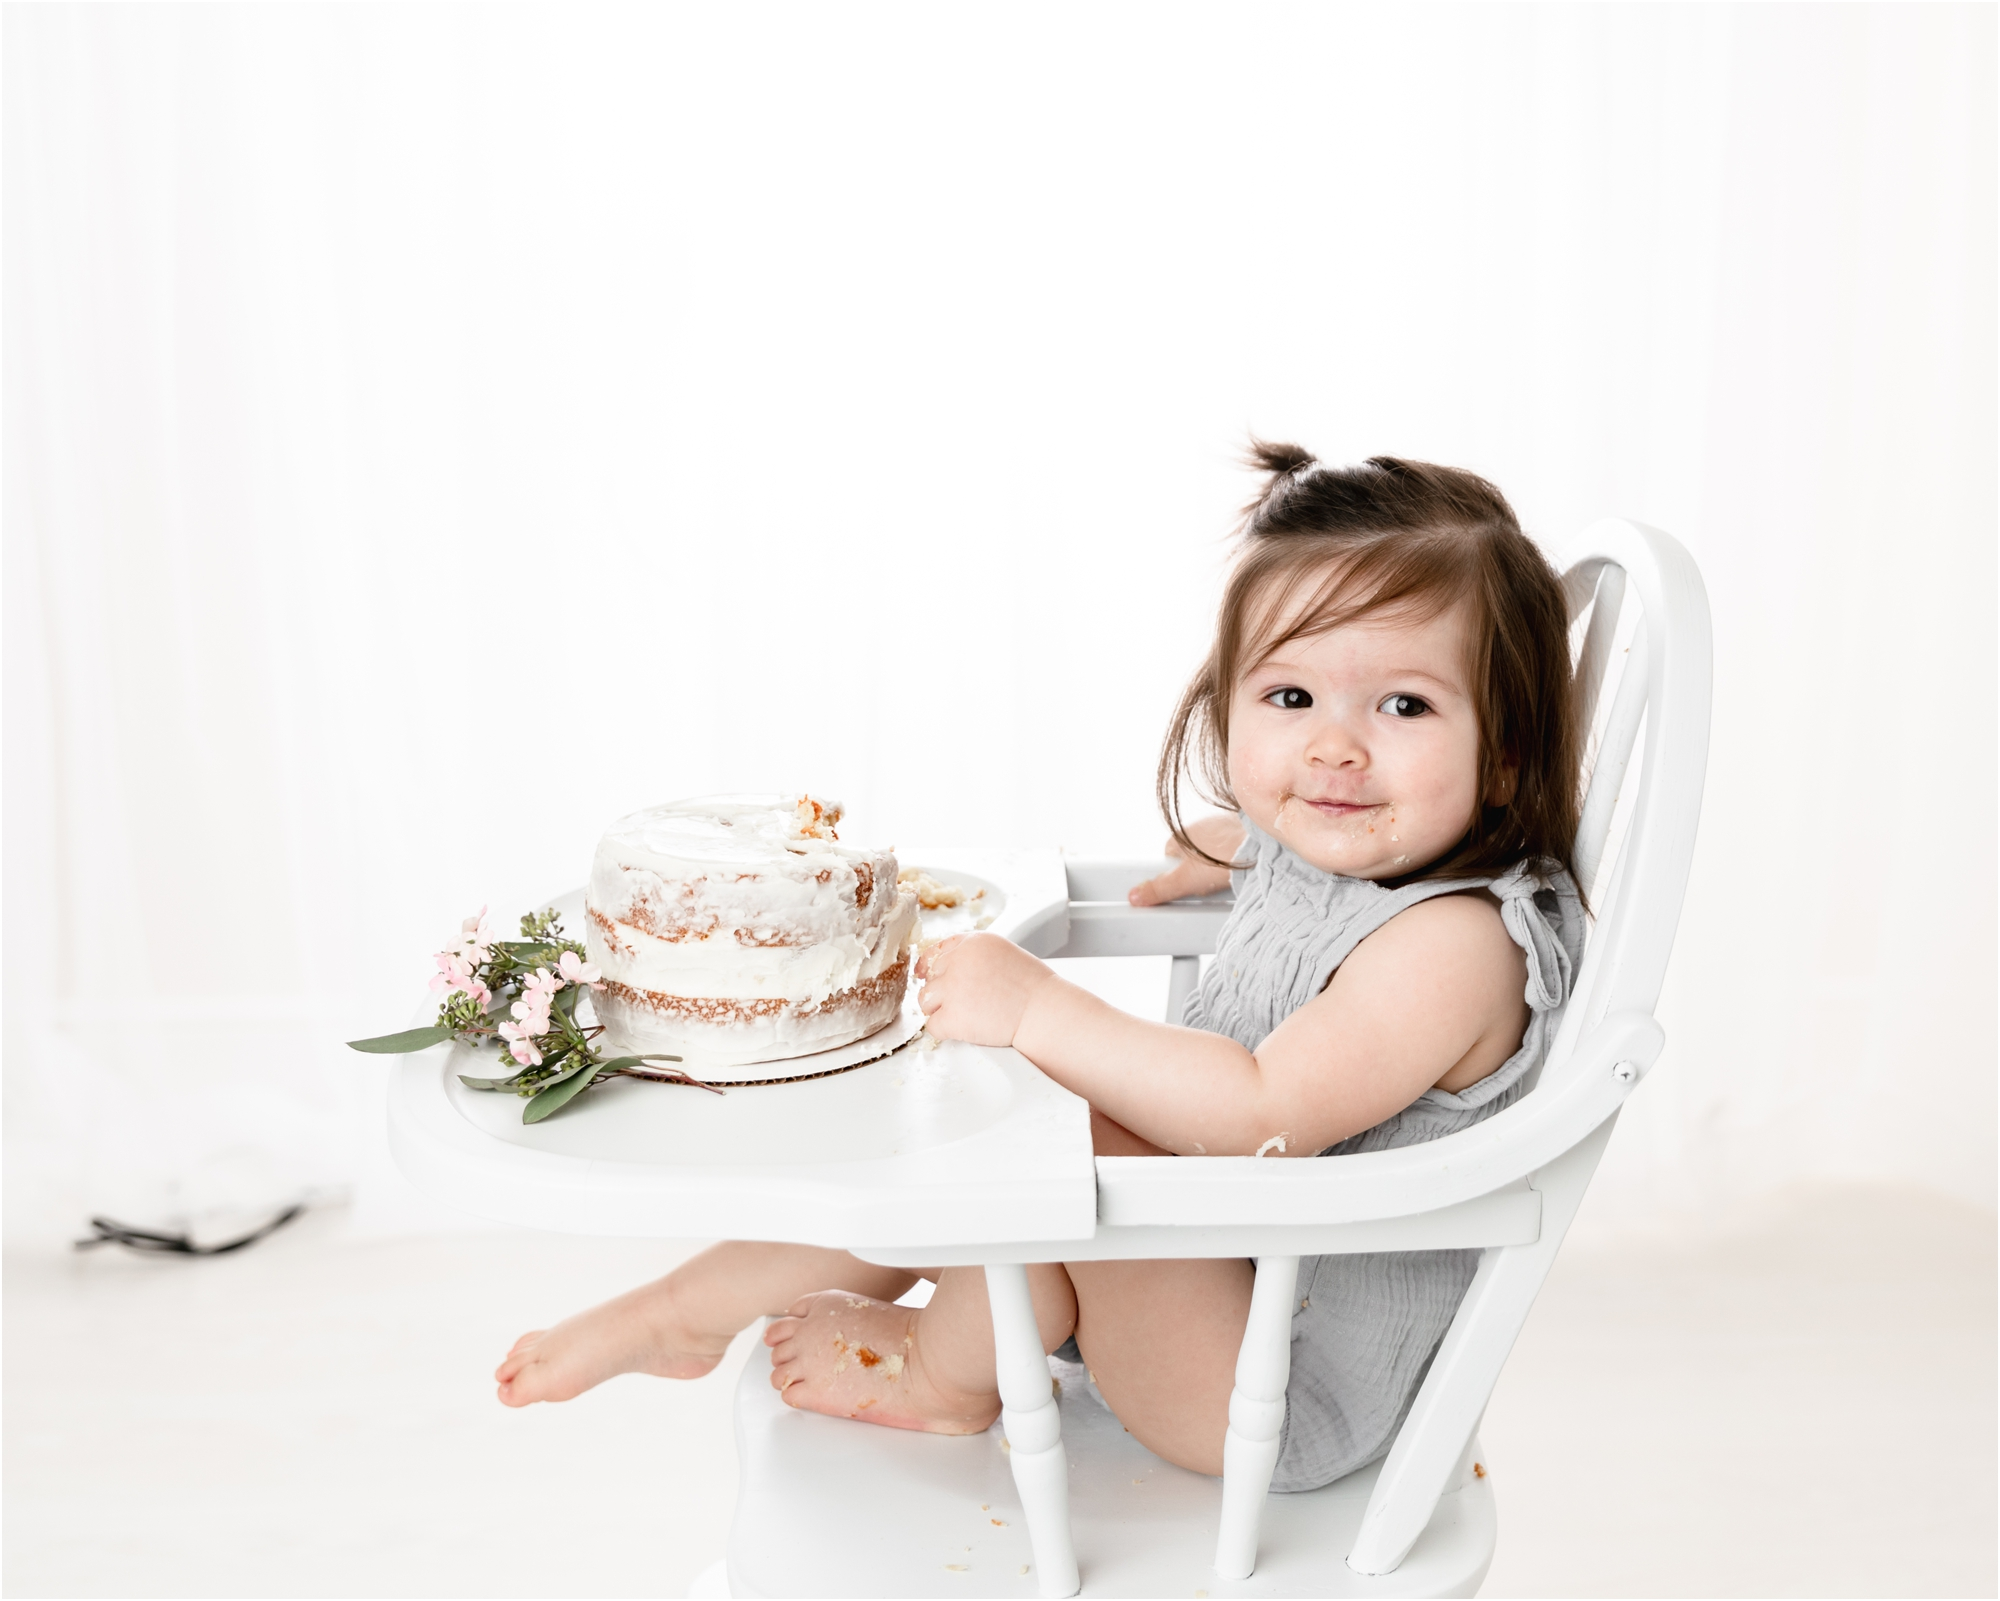 Birthday girl smiling as she eats frosting during cake smash in Houston studio. Photo by Lifetime of Clicks Photography.